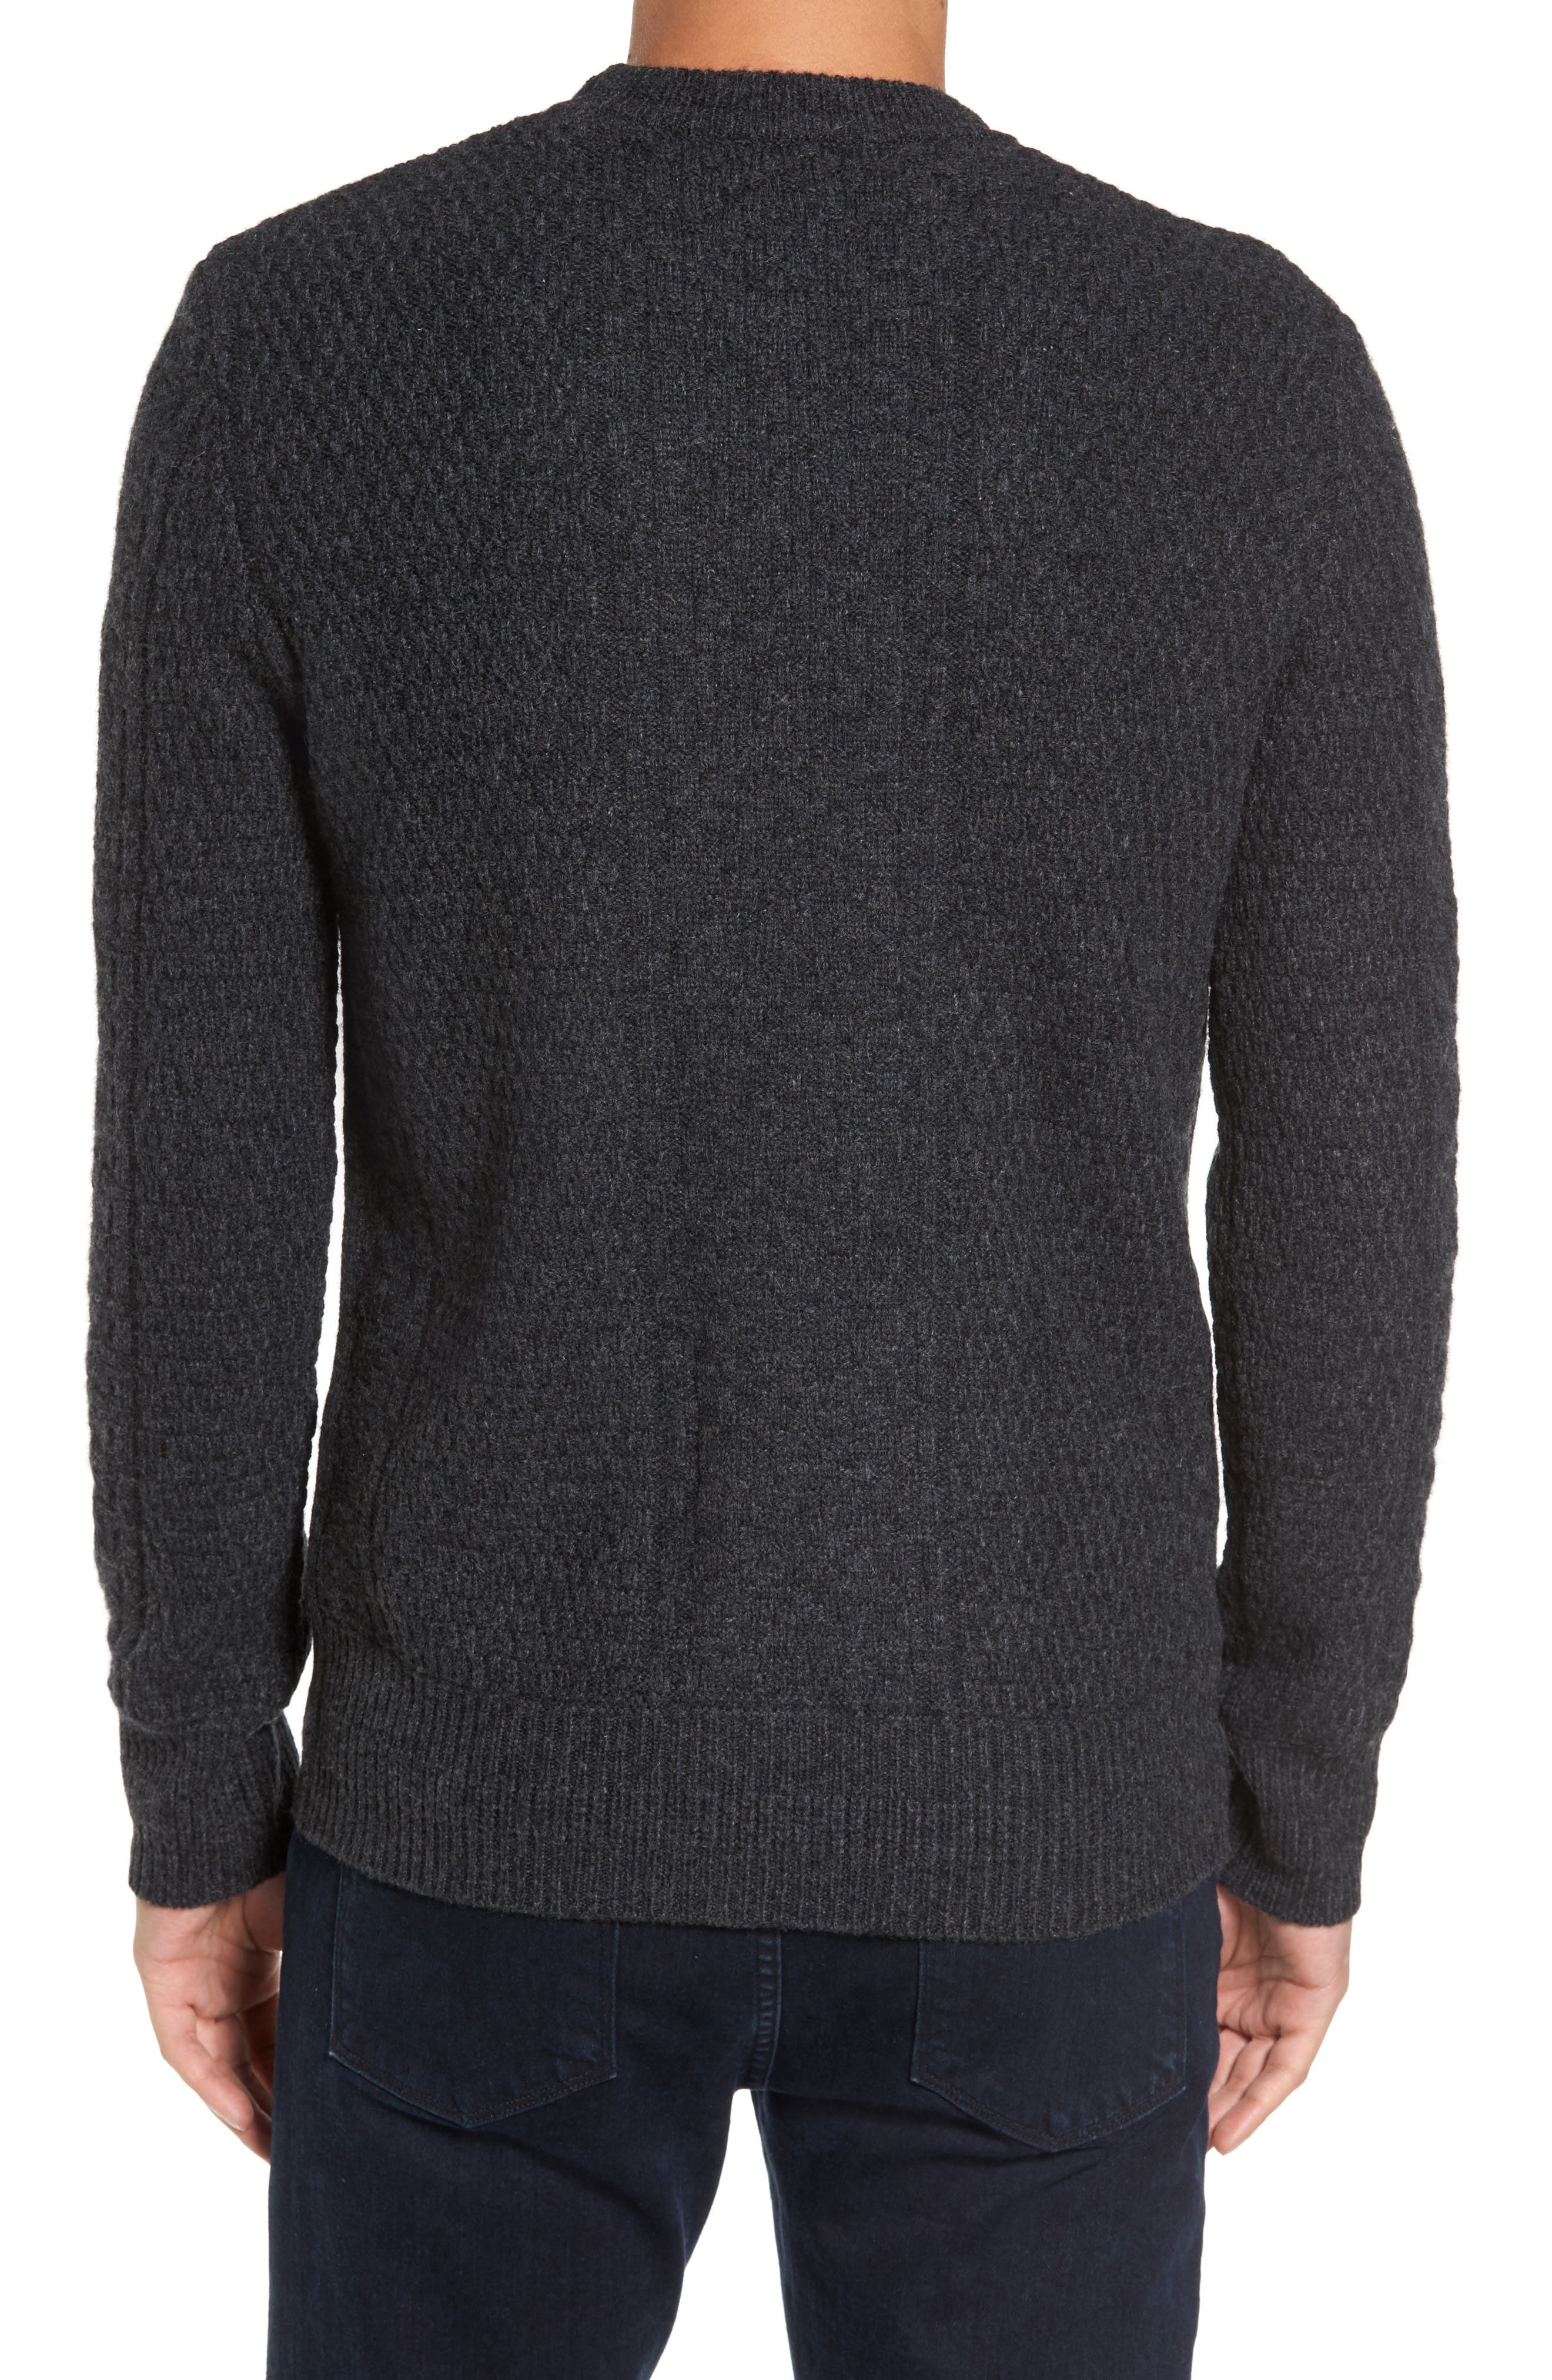 Wool Crewneck Sweater,                             Alternate thumbnail 2, color,                             Charcoal